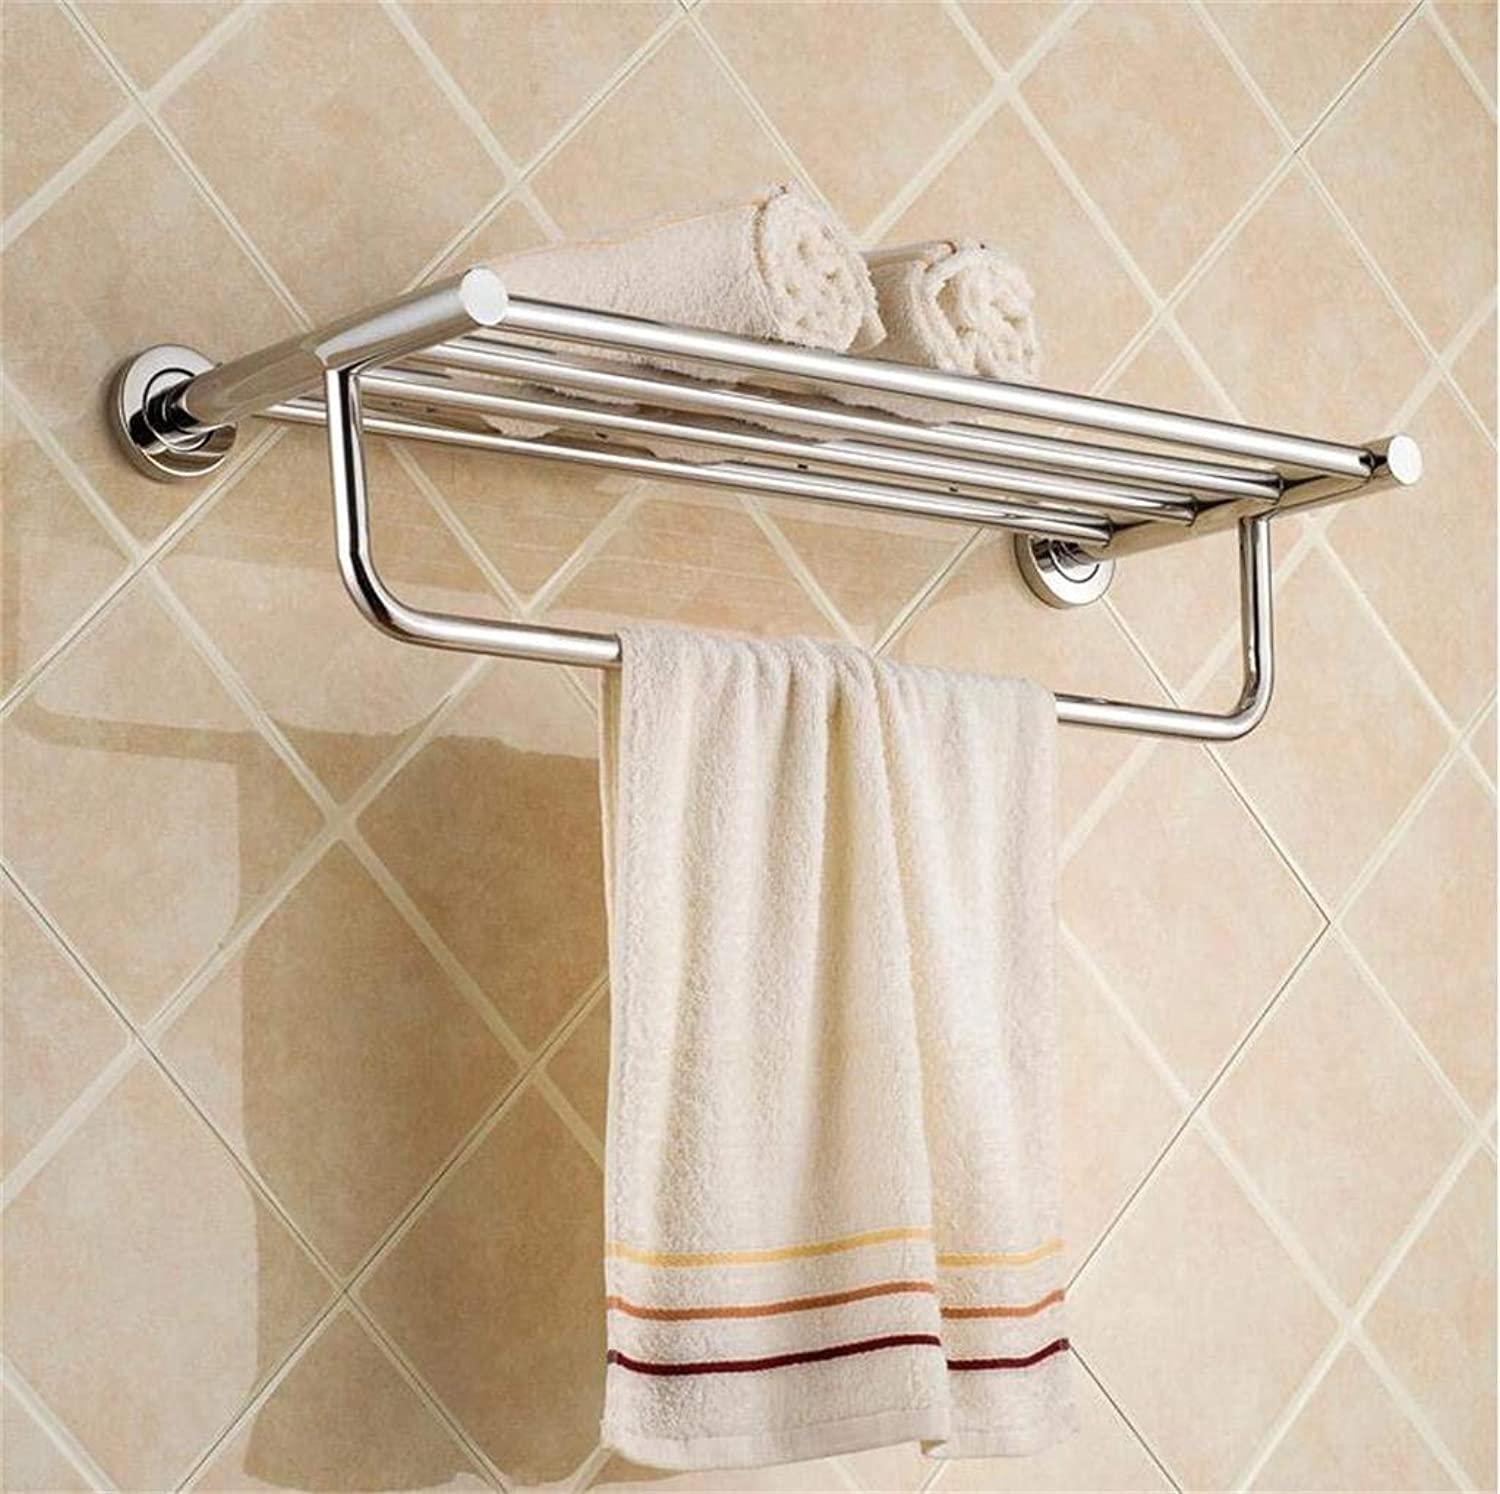 Towel Rack Towel Bars Stainless Steel Towel Rack Towel Rack Towel Rack Accessories Towel Bars Bathroom Towel Shelf